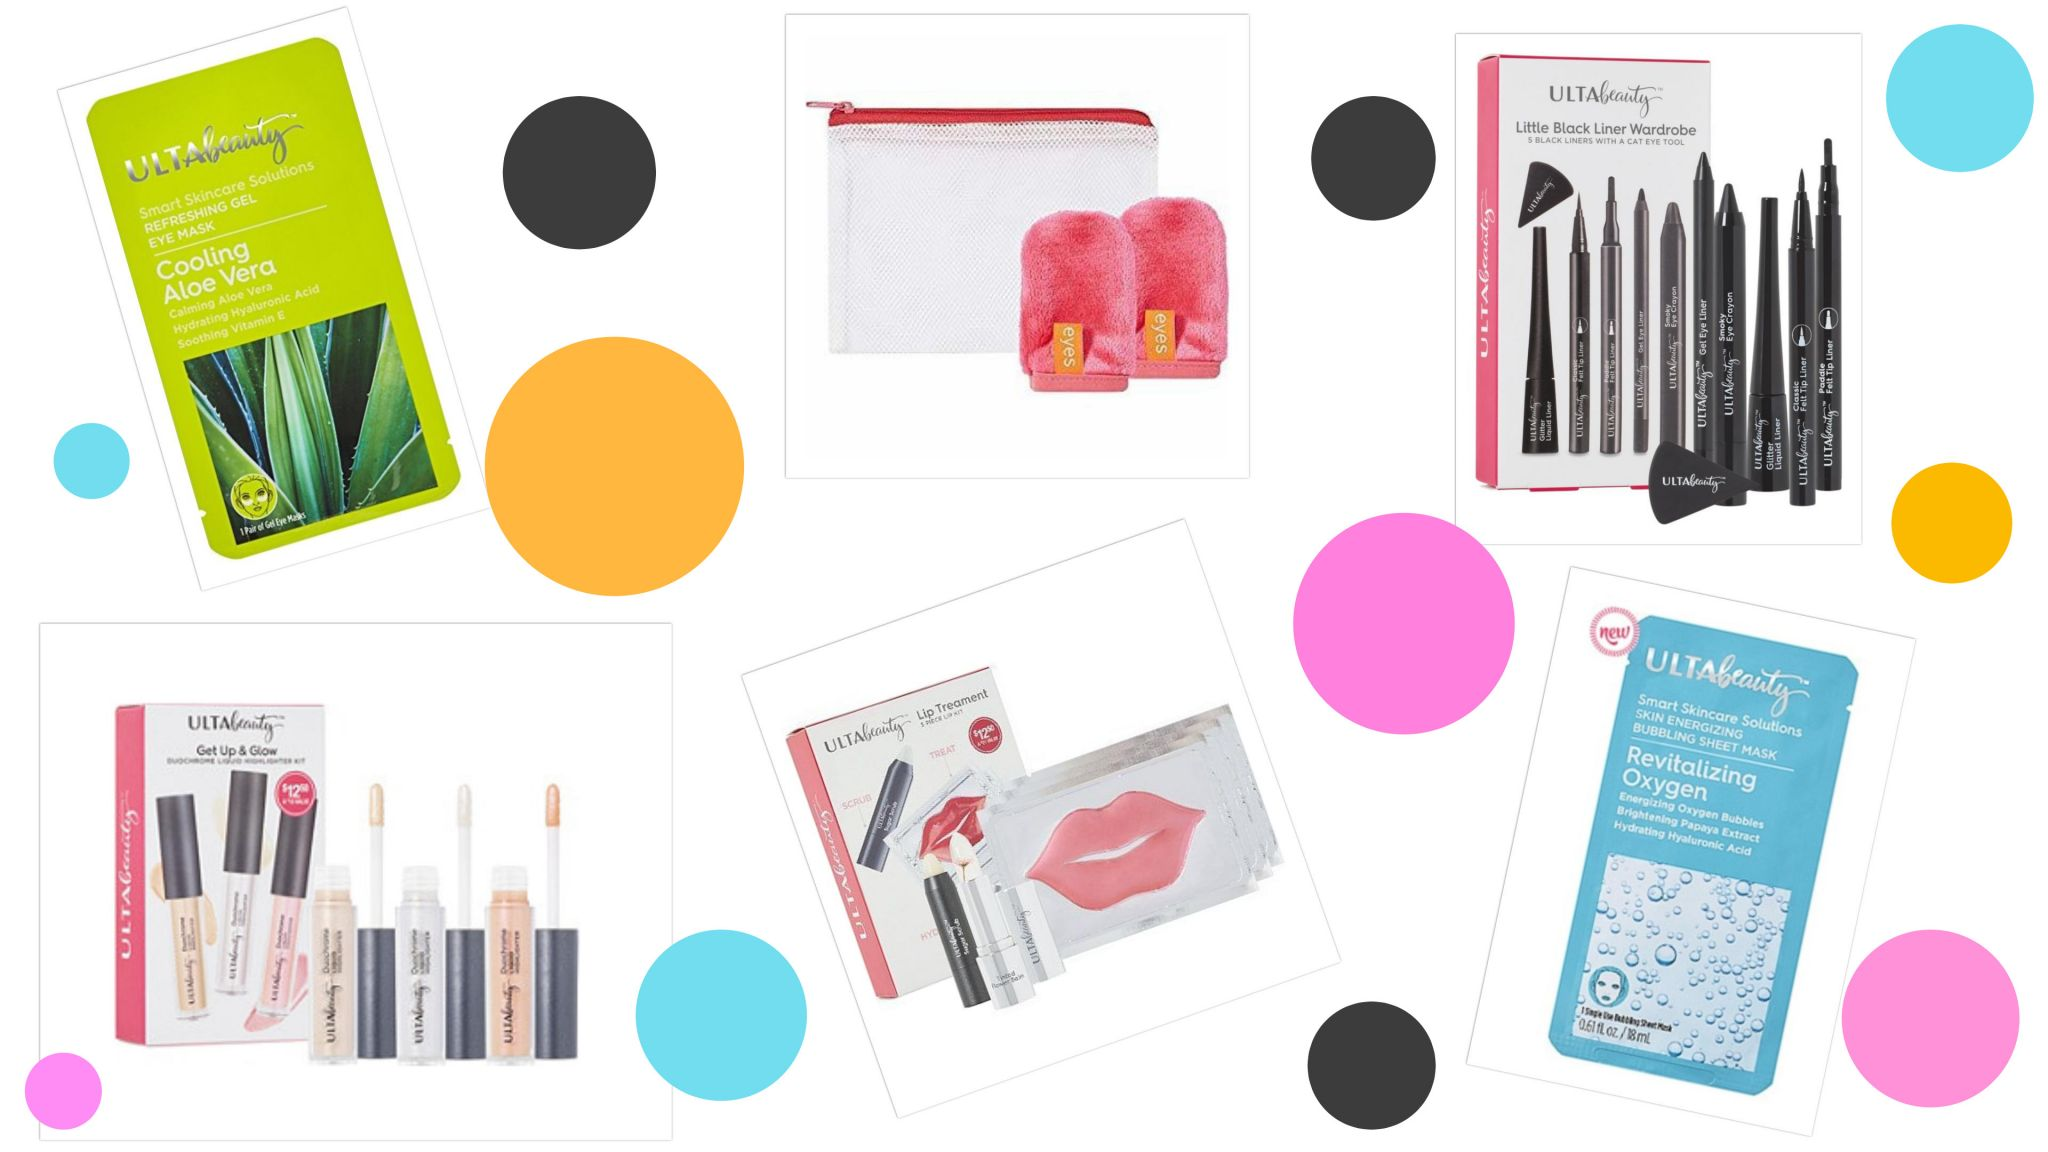 ulta beauty blog giveaway july 2018